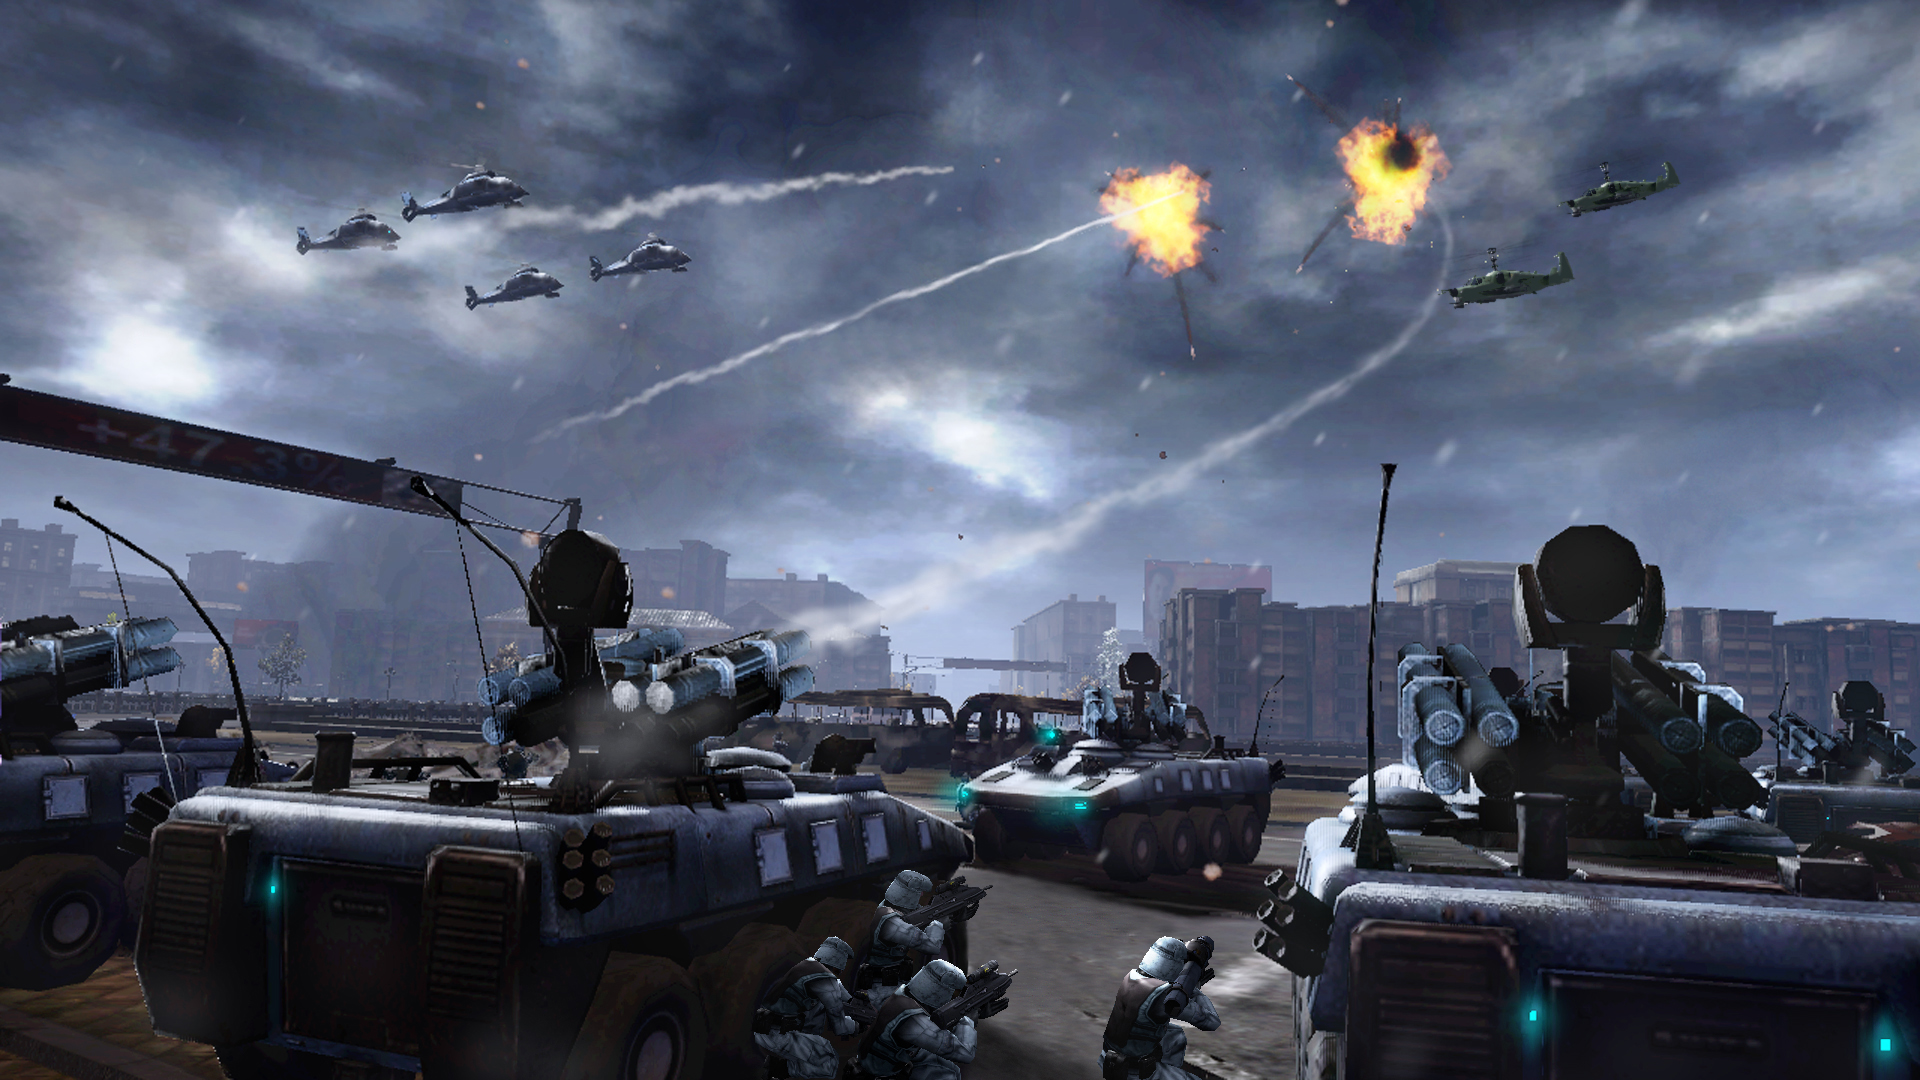 http://download.gameblog.fr/images/jeux/1523/Endwar_Multi_Ed016.jpg